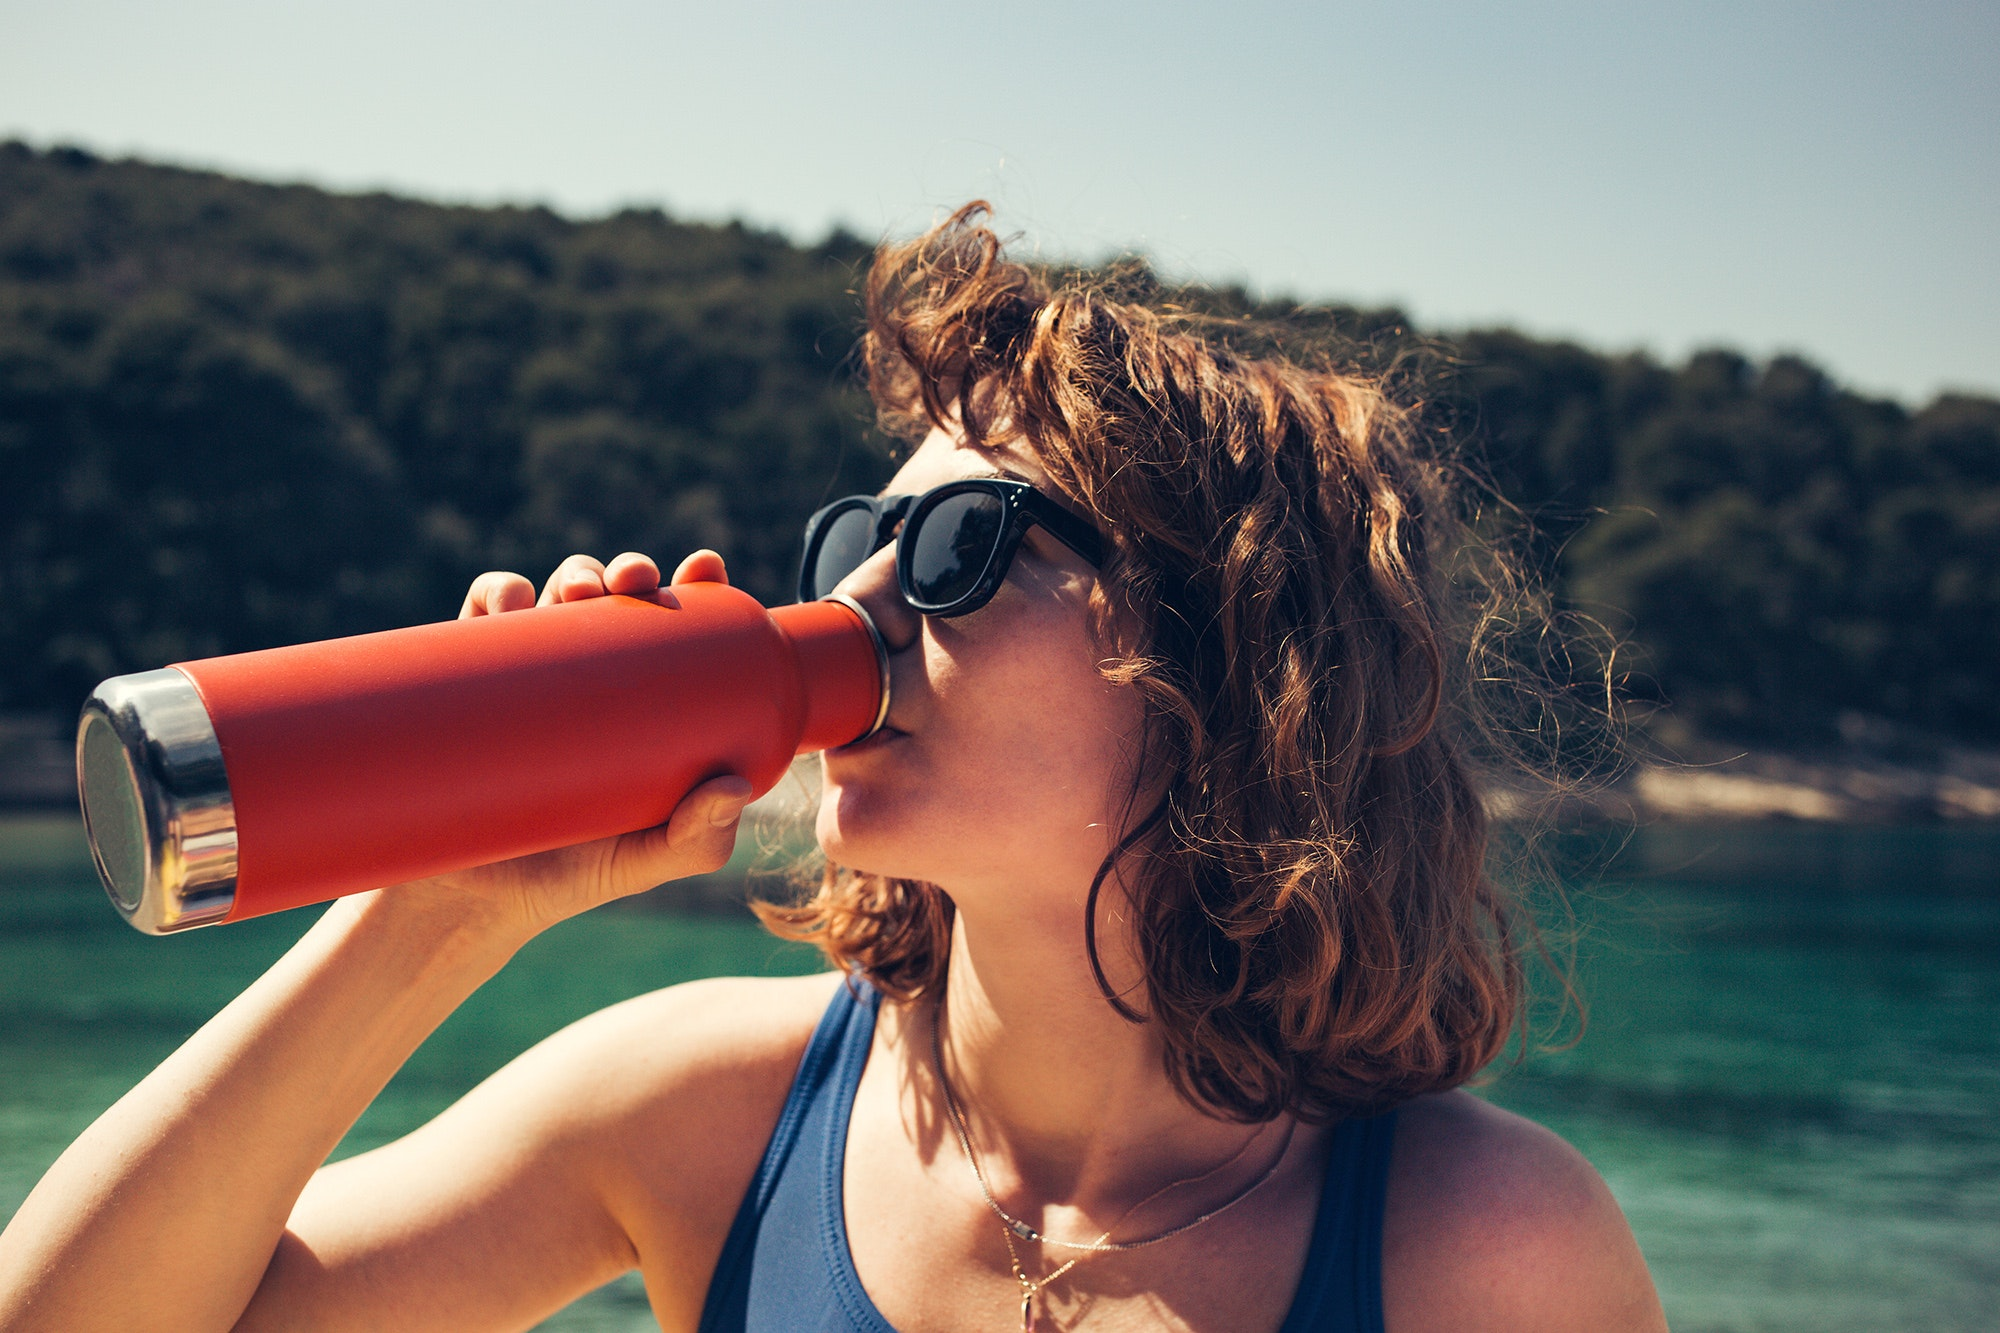 Packing a reusable water bottle is one of the easiest ways to eliminate waste while traveling.